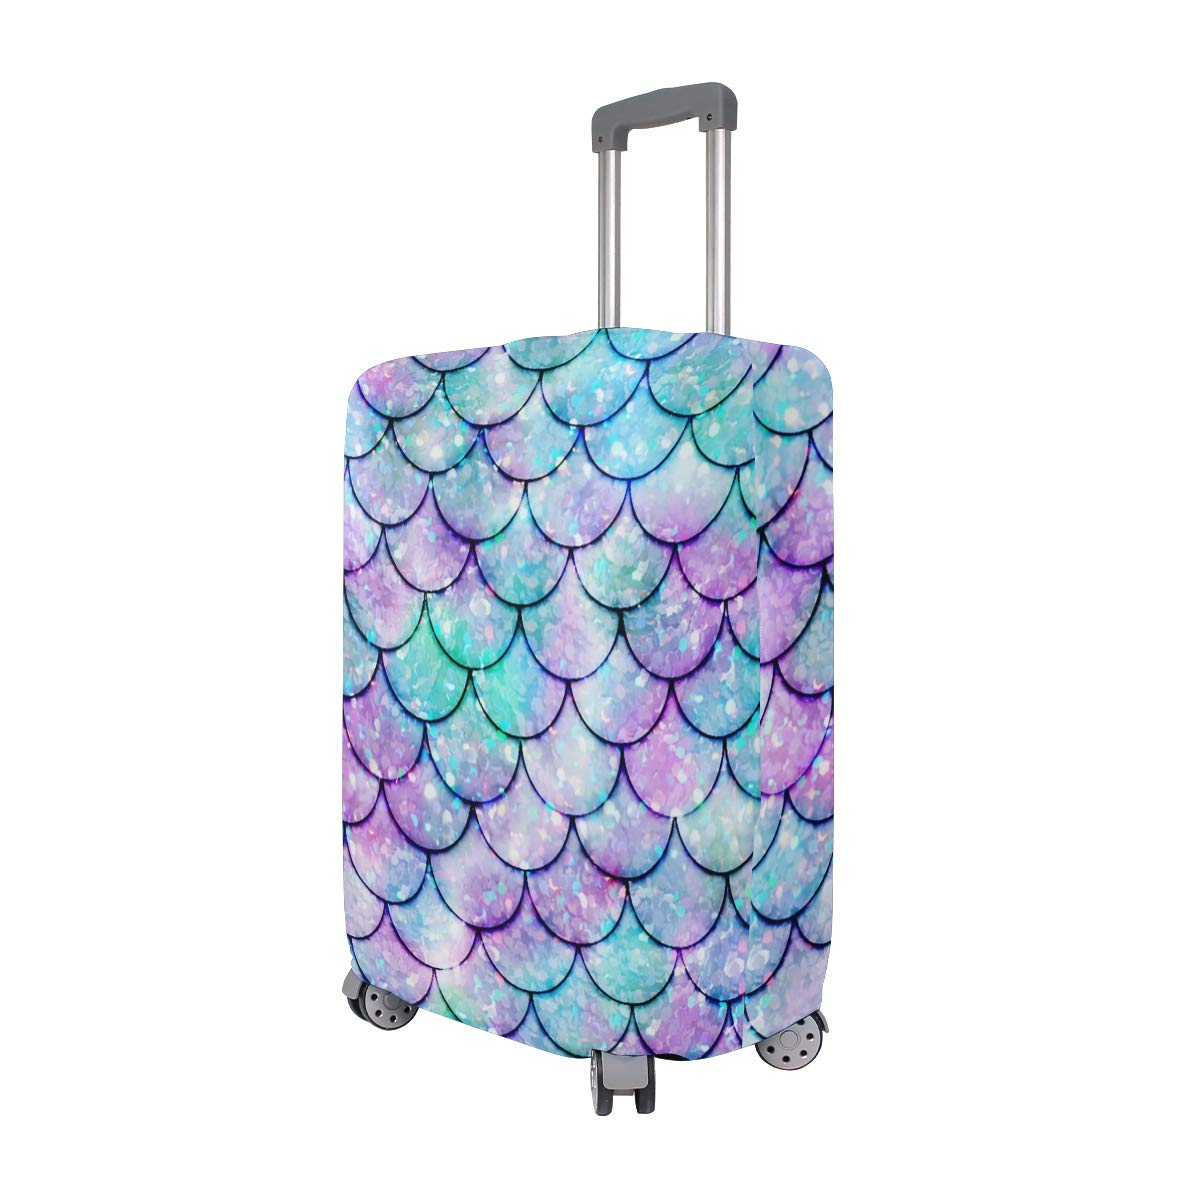 Amazon.com | FOLPPLY Colorful Watercolor Mermaid Scale Luggage Cover Baggage Suitcase Travel Protector Fit for 18-32 Inch | Luggage & Travel Gear